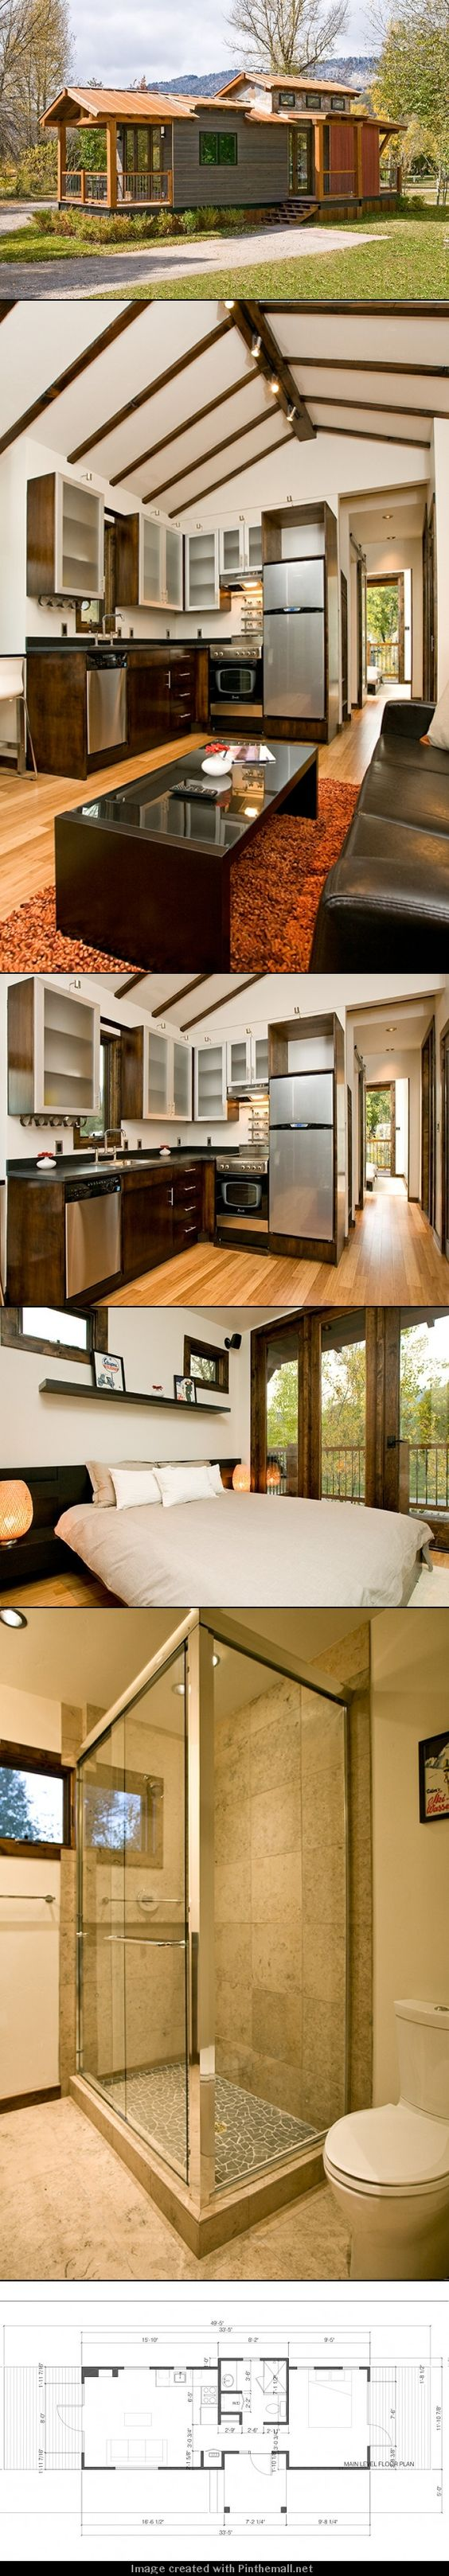 46 Best Tiny House Inspirations Images On Pinterest